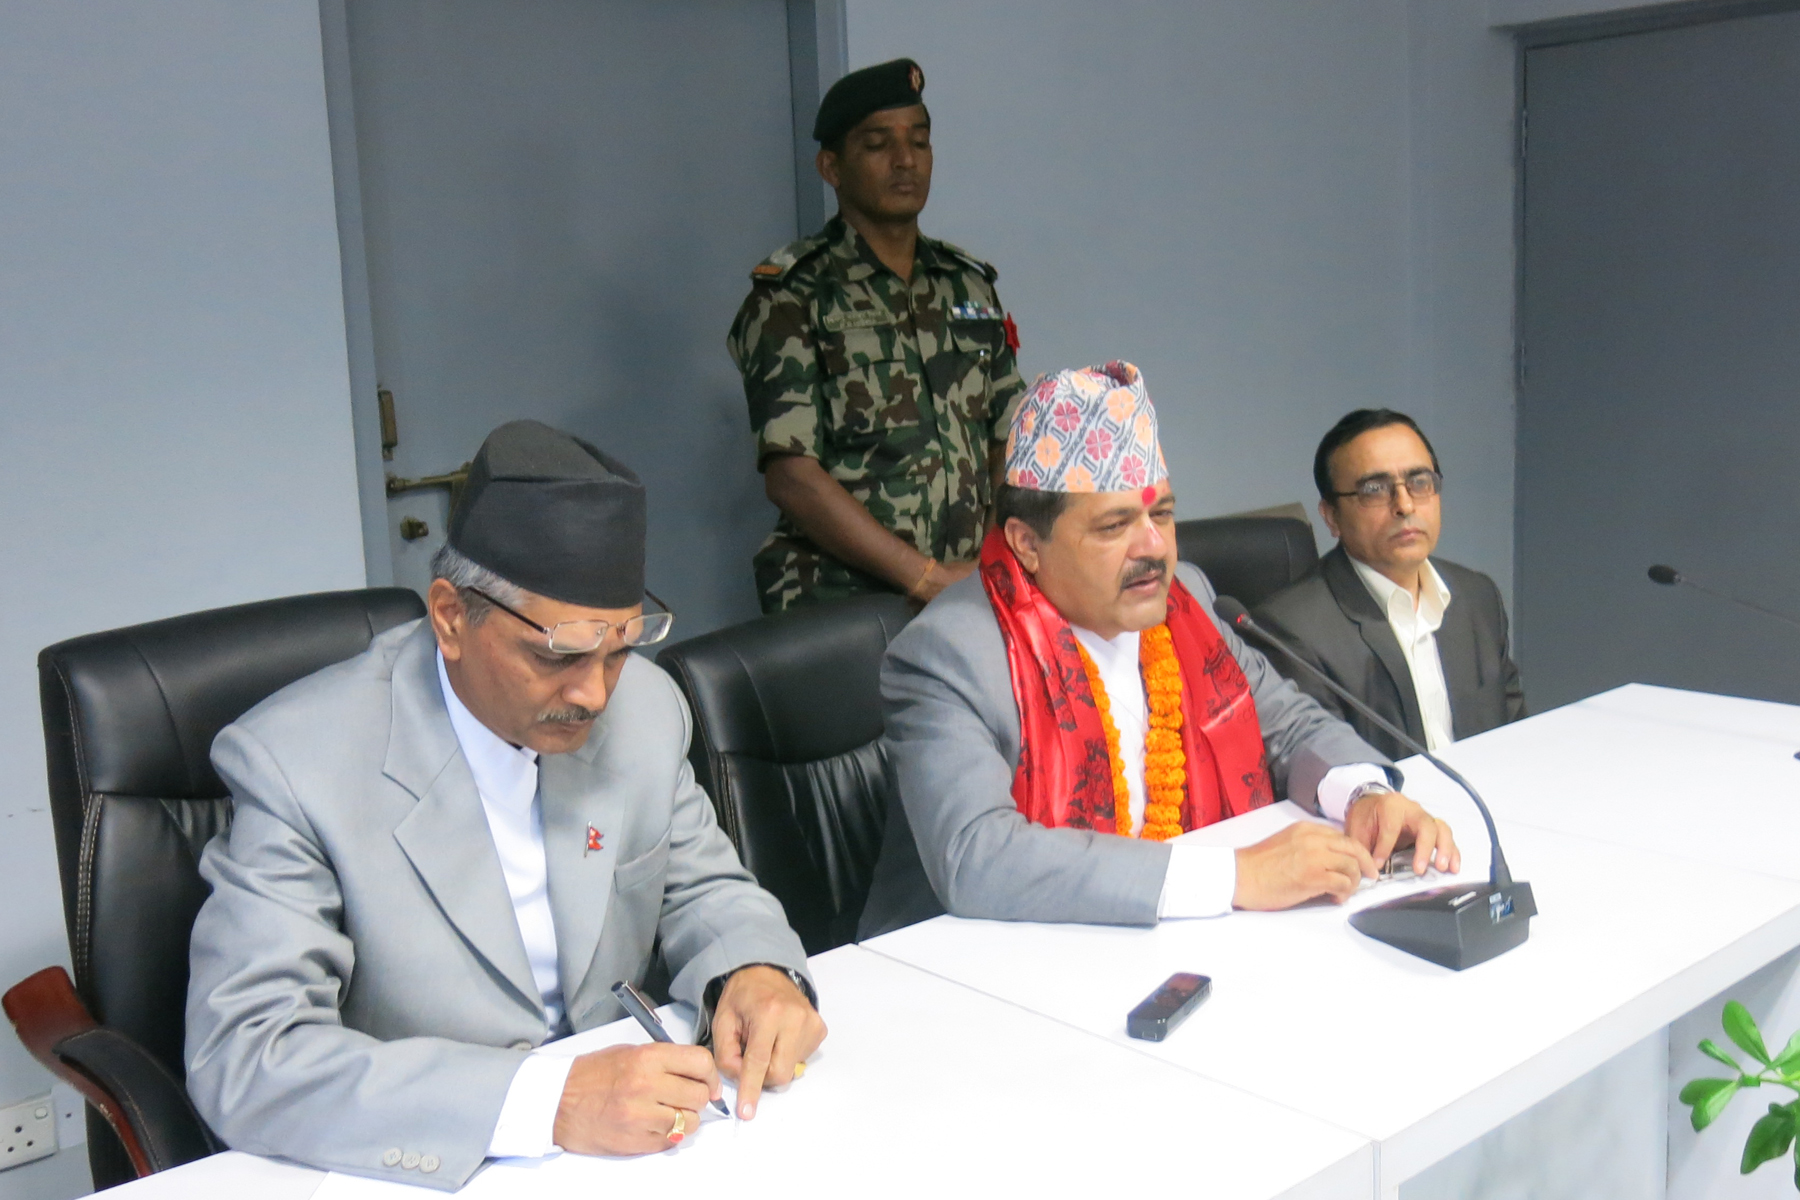 Newly appointed Minister for Law, Justice and Parliamentary Affairs Agni Prasad Kharel  giving instruction to the officials after he assumed his post in Kathmandu, on Monday. Photo: RSS